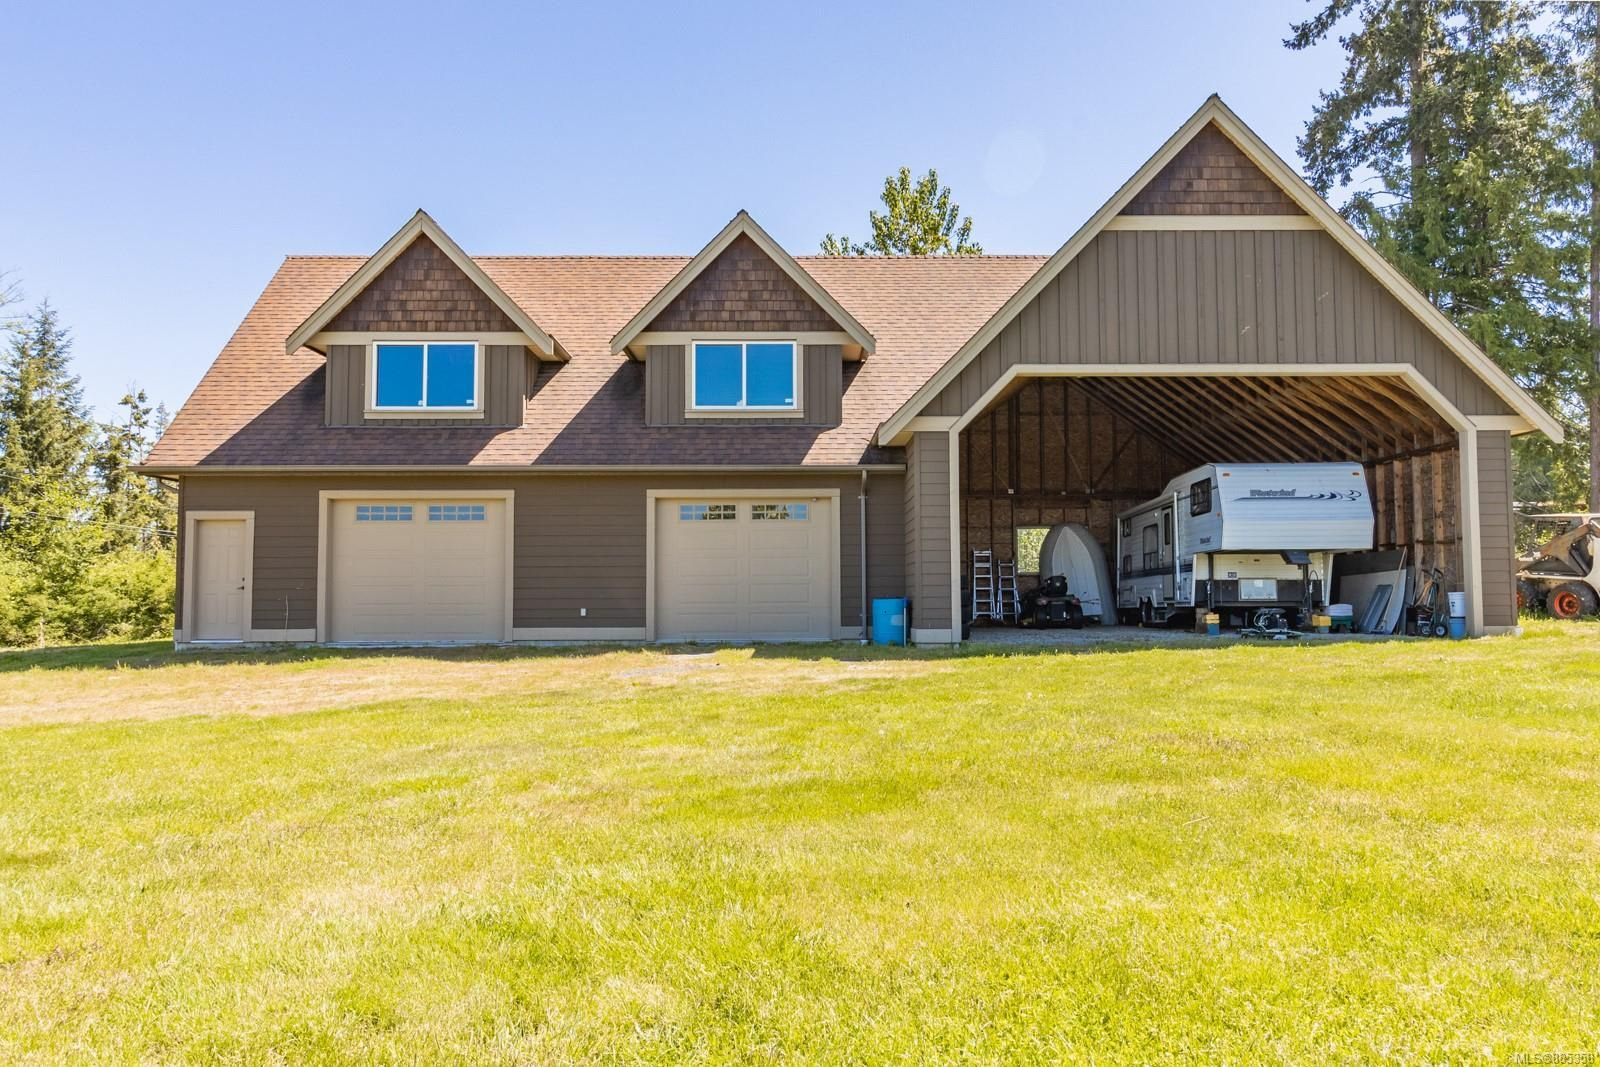 Photo 2: Photos: 2850 Peters Rd in : PQ Qualicum Beach House for sale (Parksville/Qualicum)  : MLS®# 885358